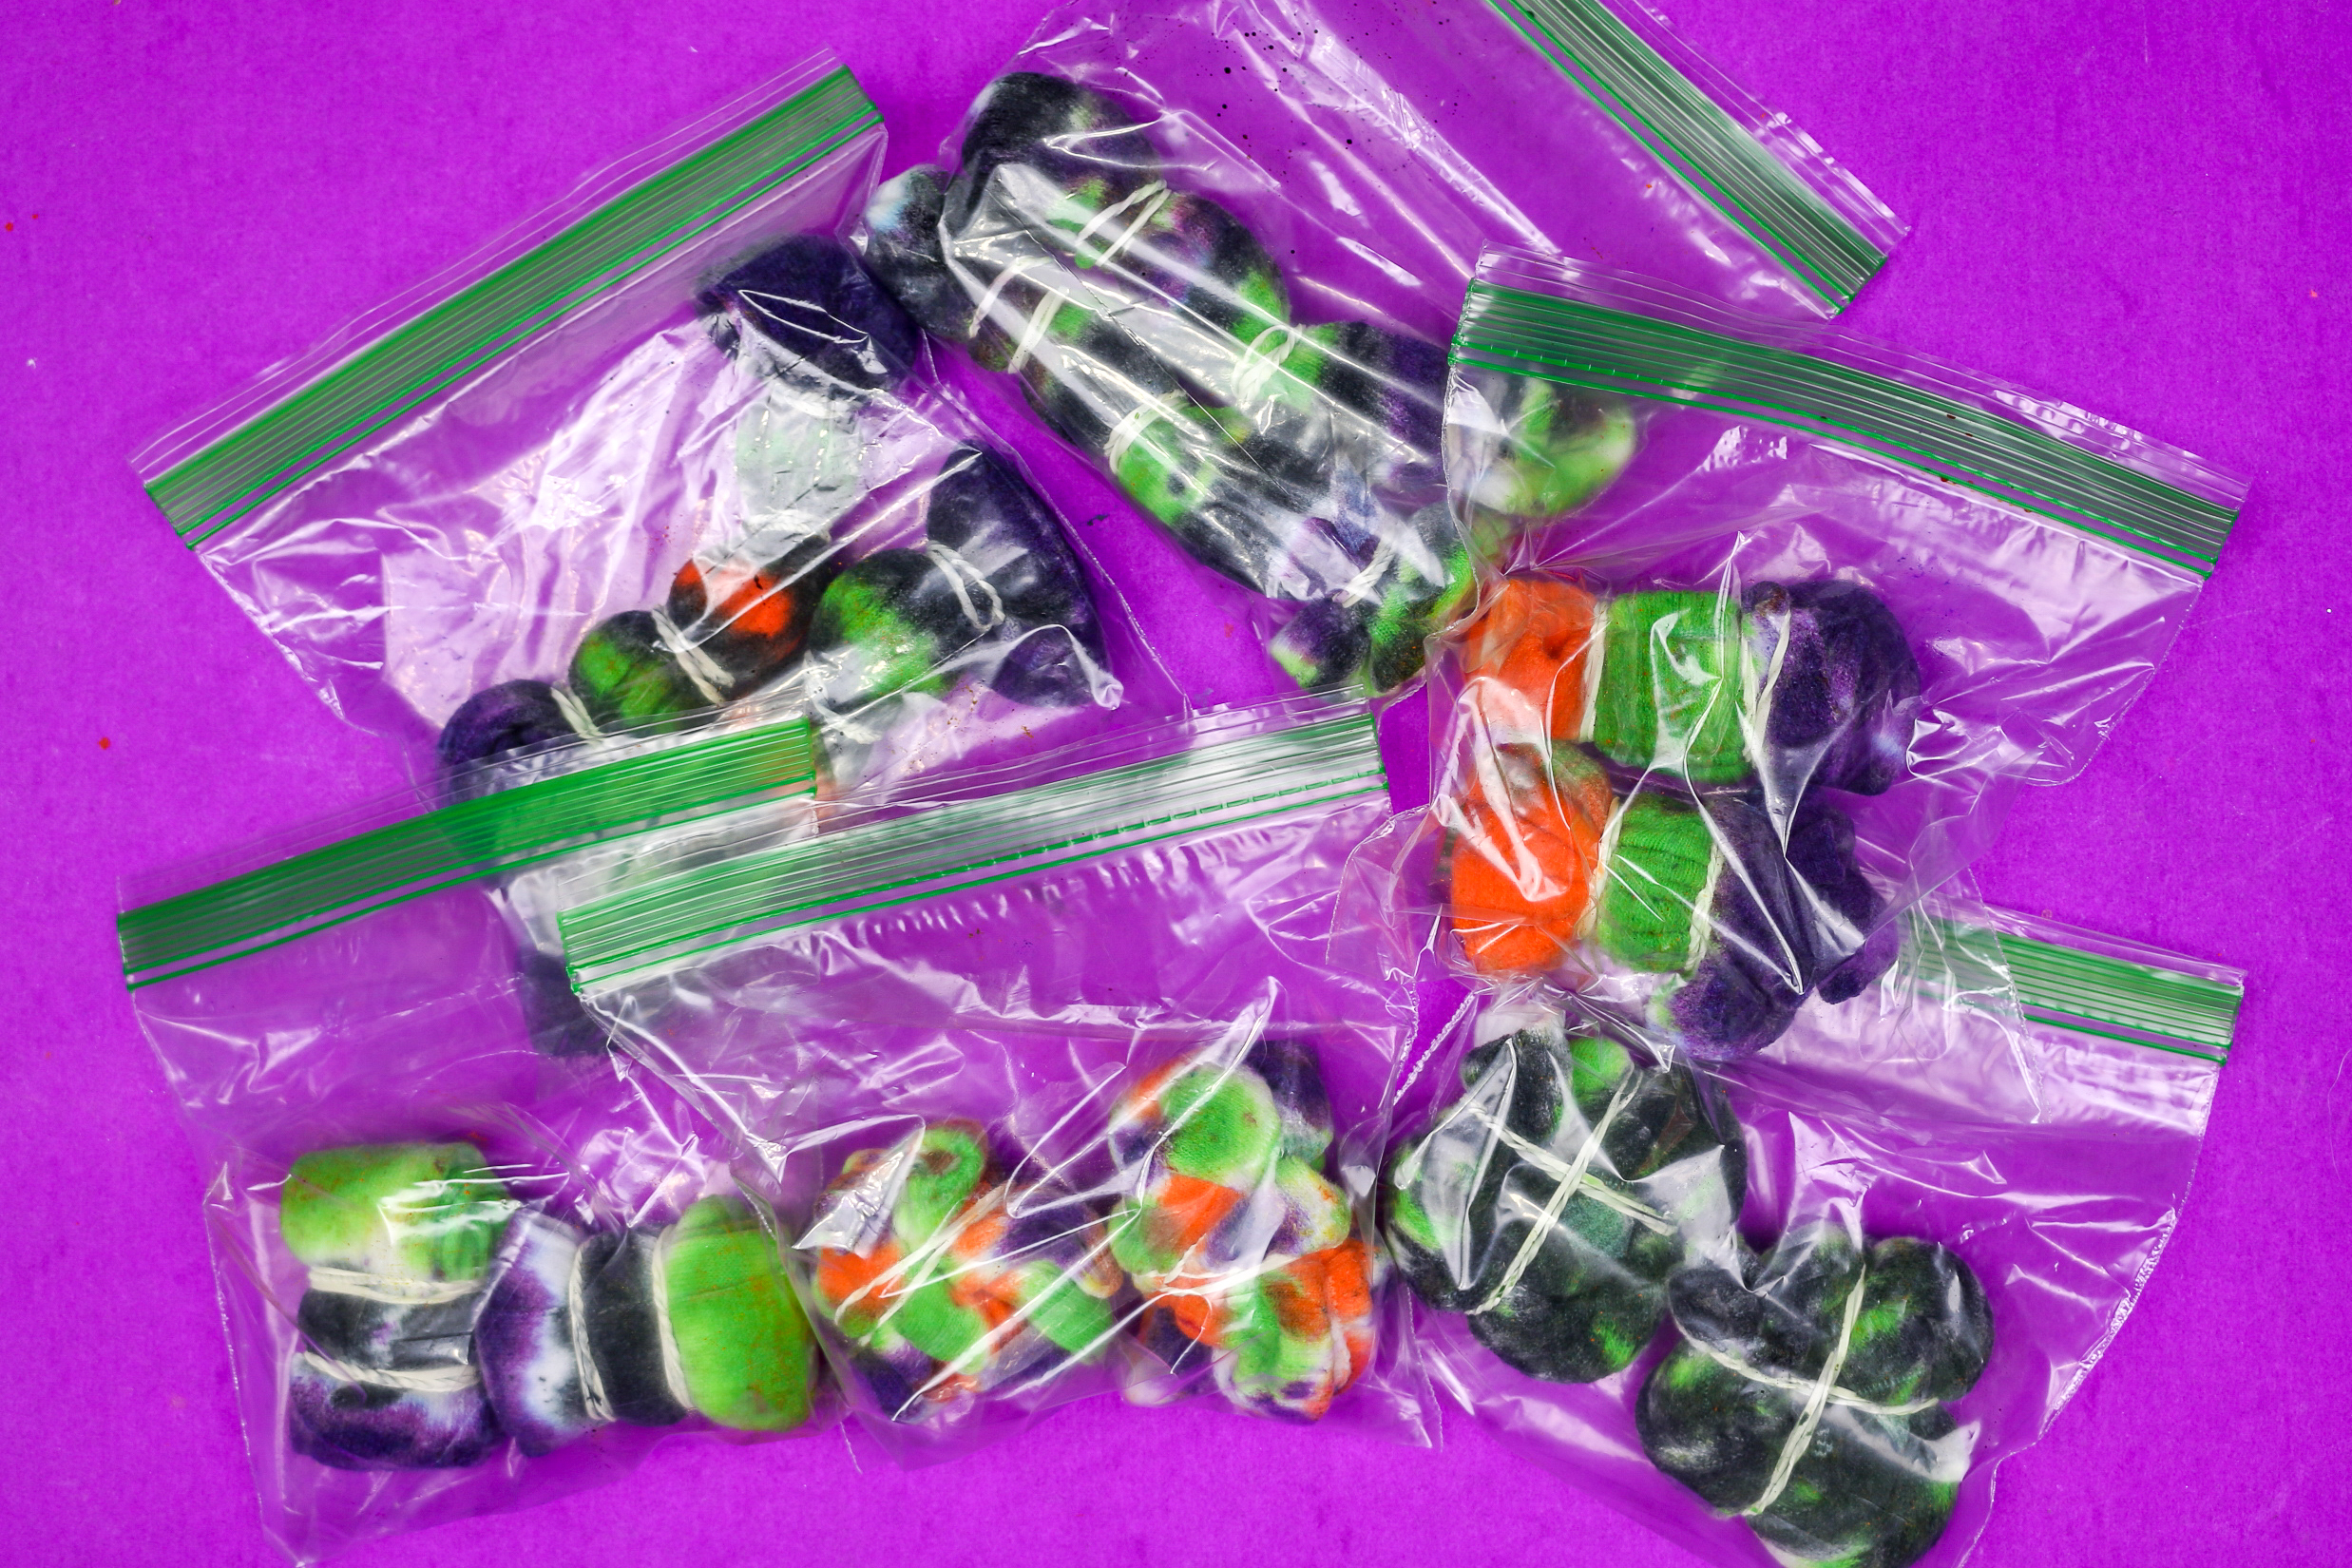 zipper food bags with wet tie dyed socks